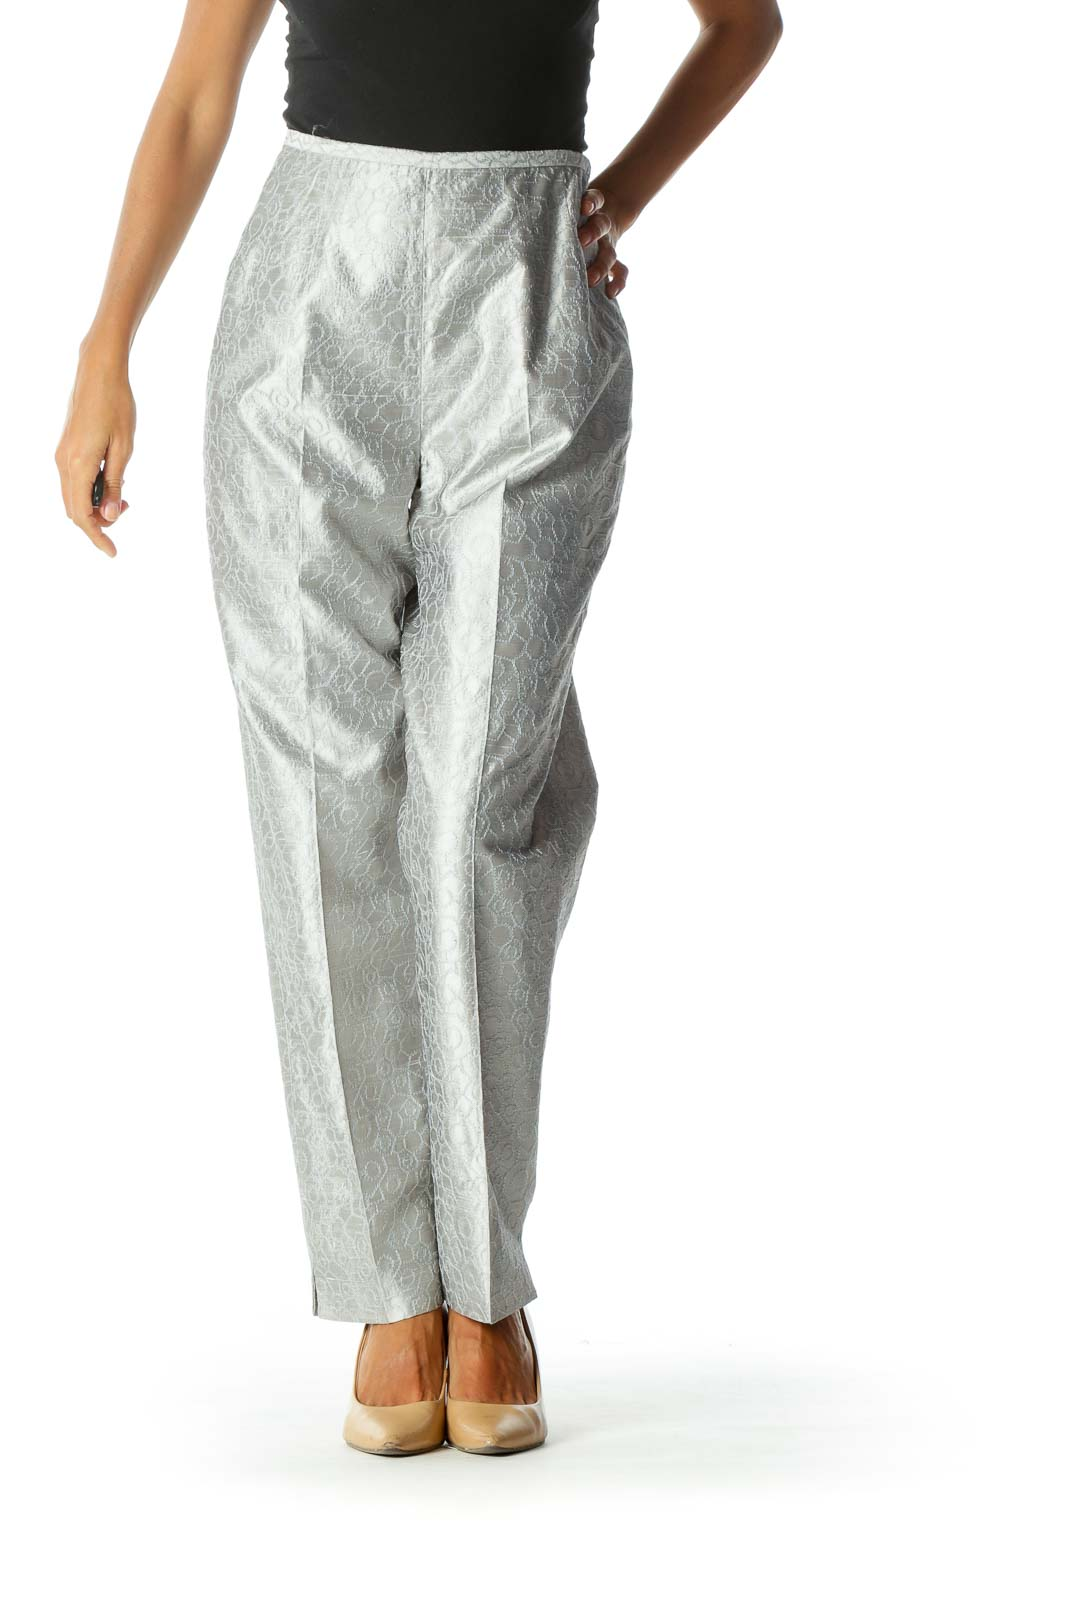 Silver Textured Pattern Tapered Side-Zipper Pants